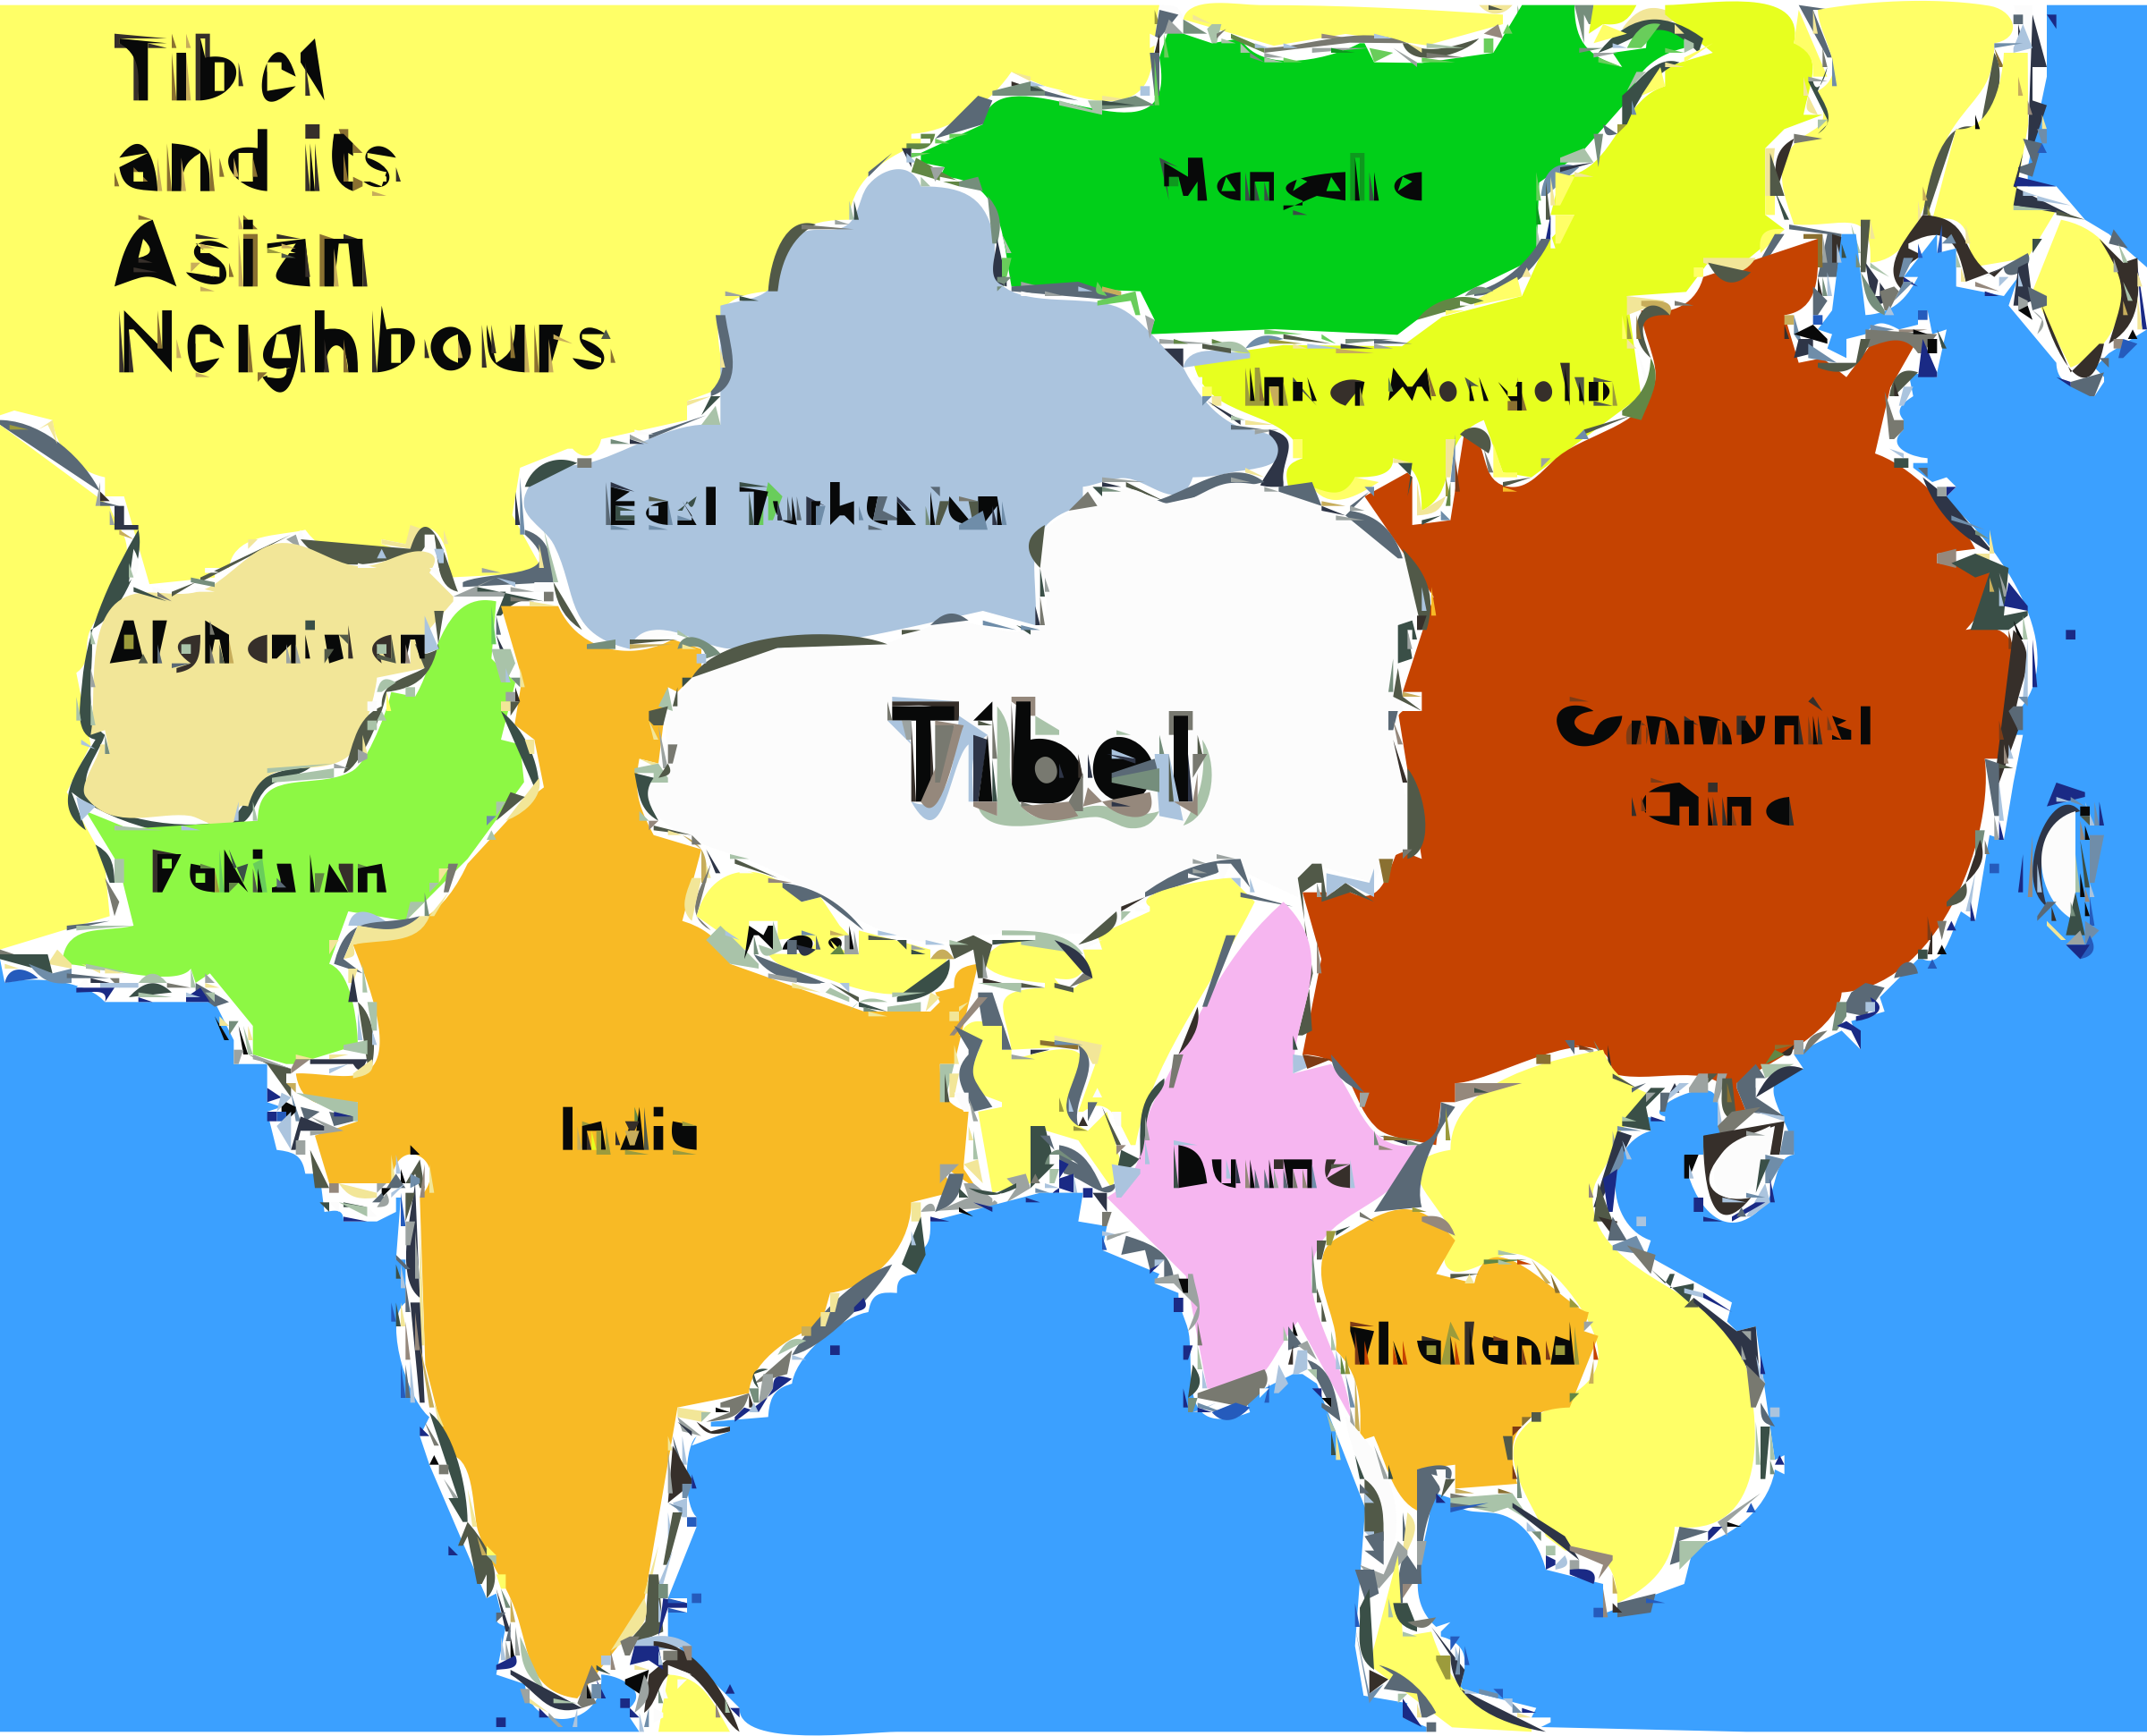 Tibet map by getaume